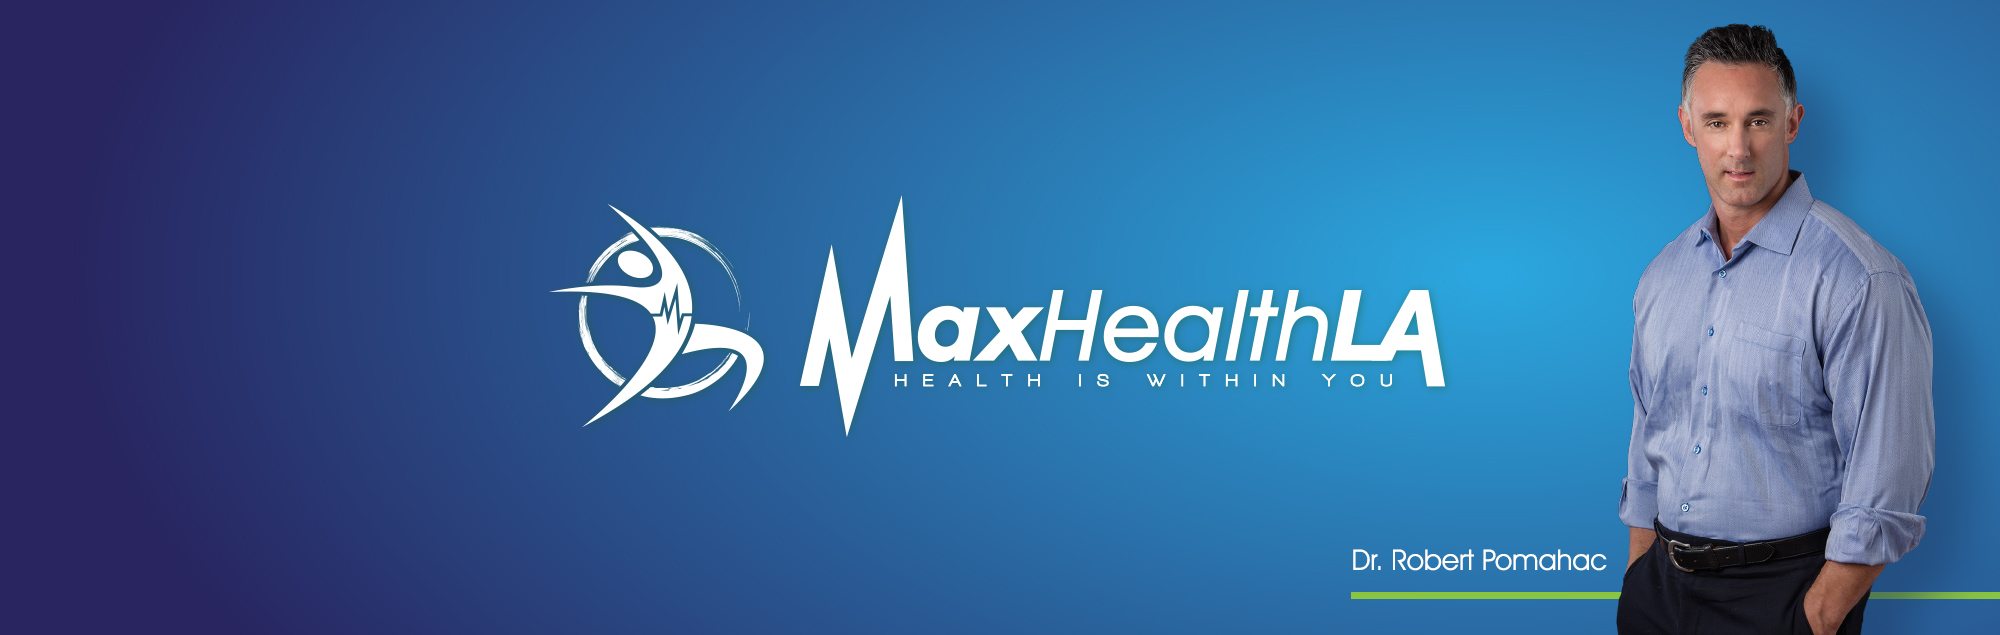 Max Health LA | Medical Centers in 6200 Wilshire Blvd - Los Angeles CA - Reviews - Photos - Phone Number